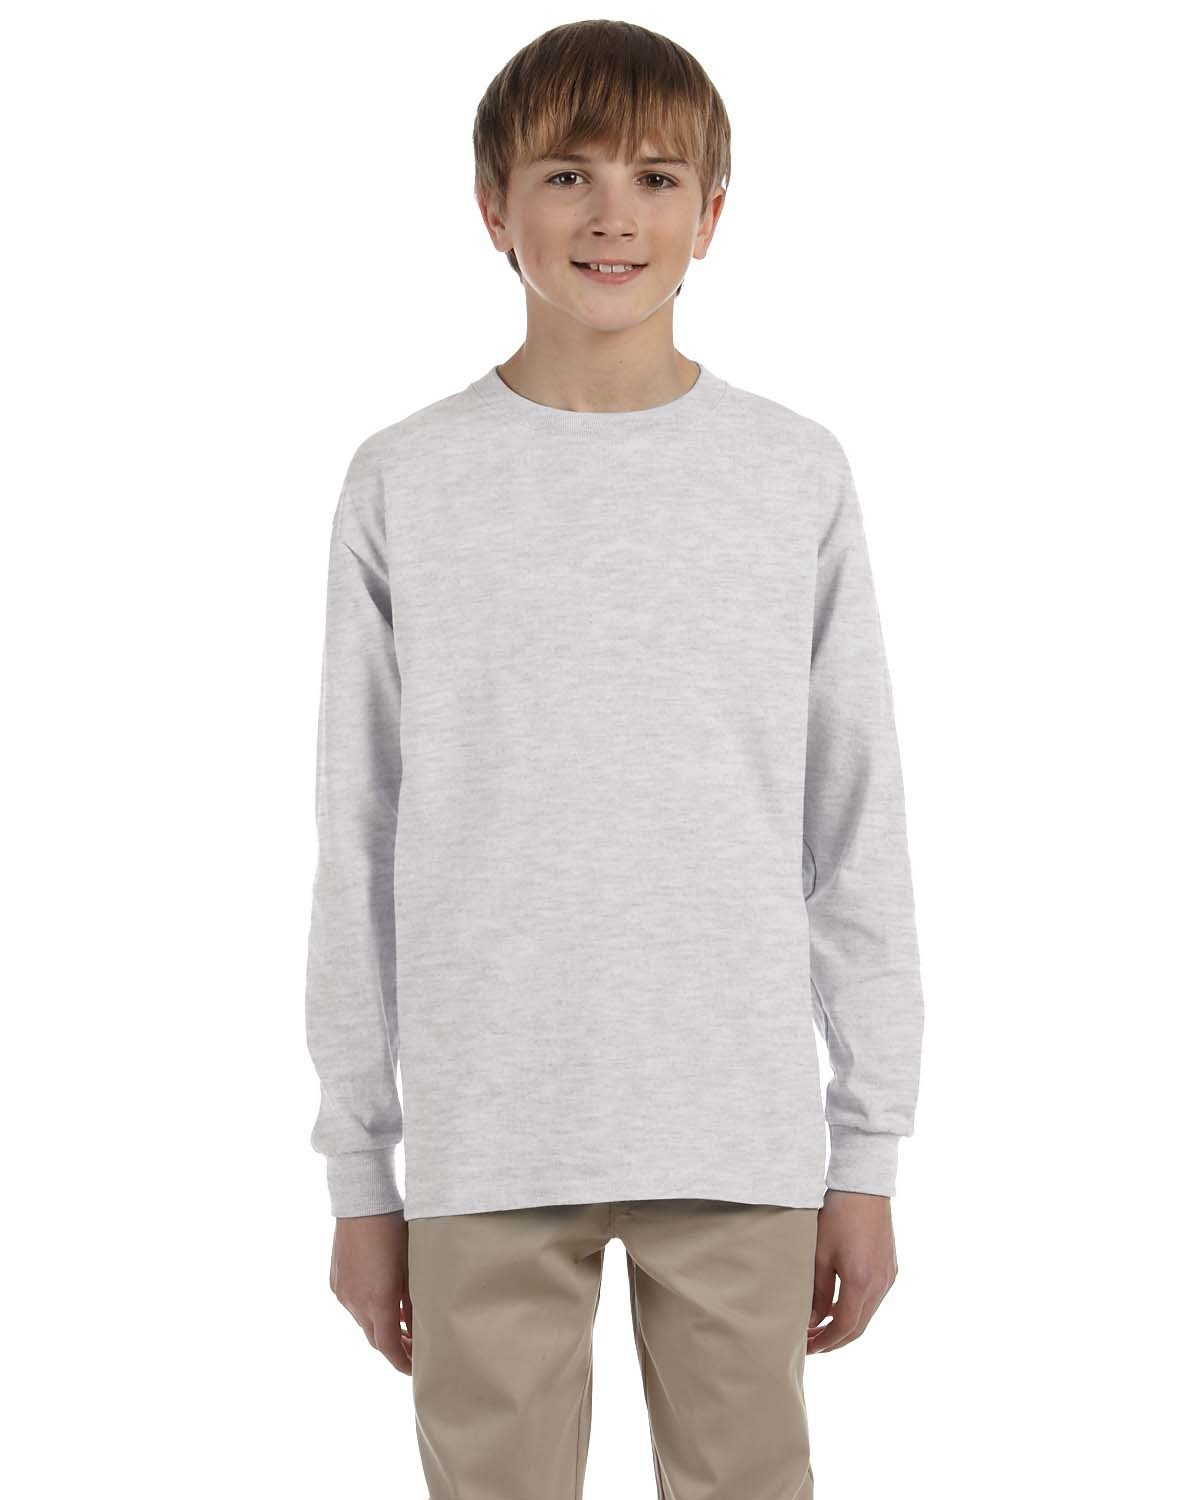 Gildan - G240B - Youth Ultra Cotton®6 oz. Long-Sleeve T-Shirt